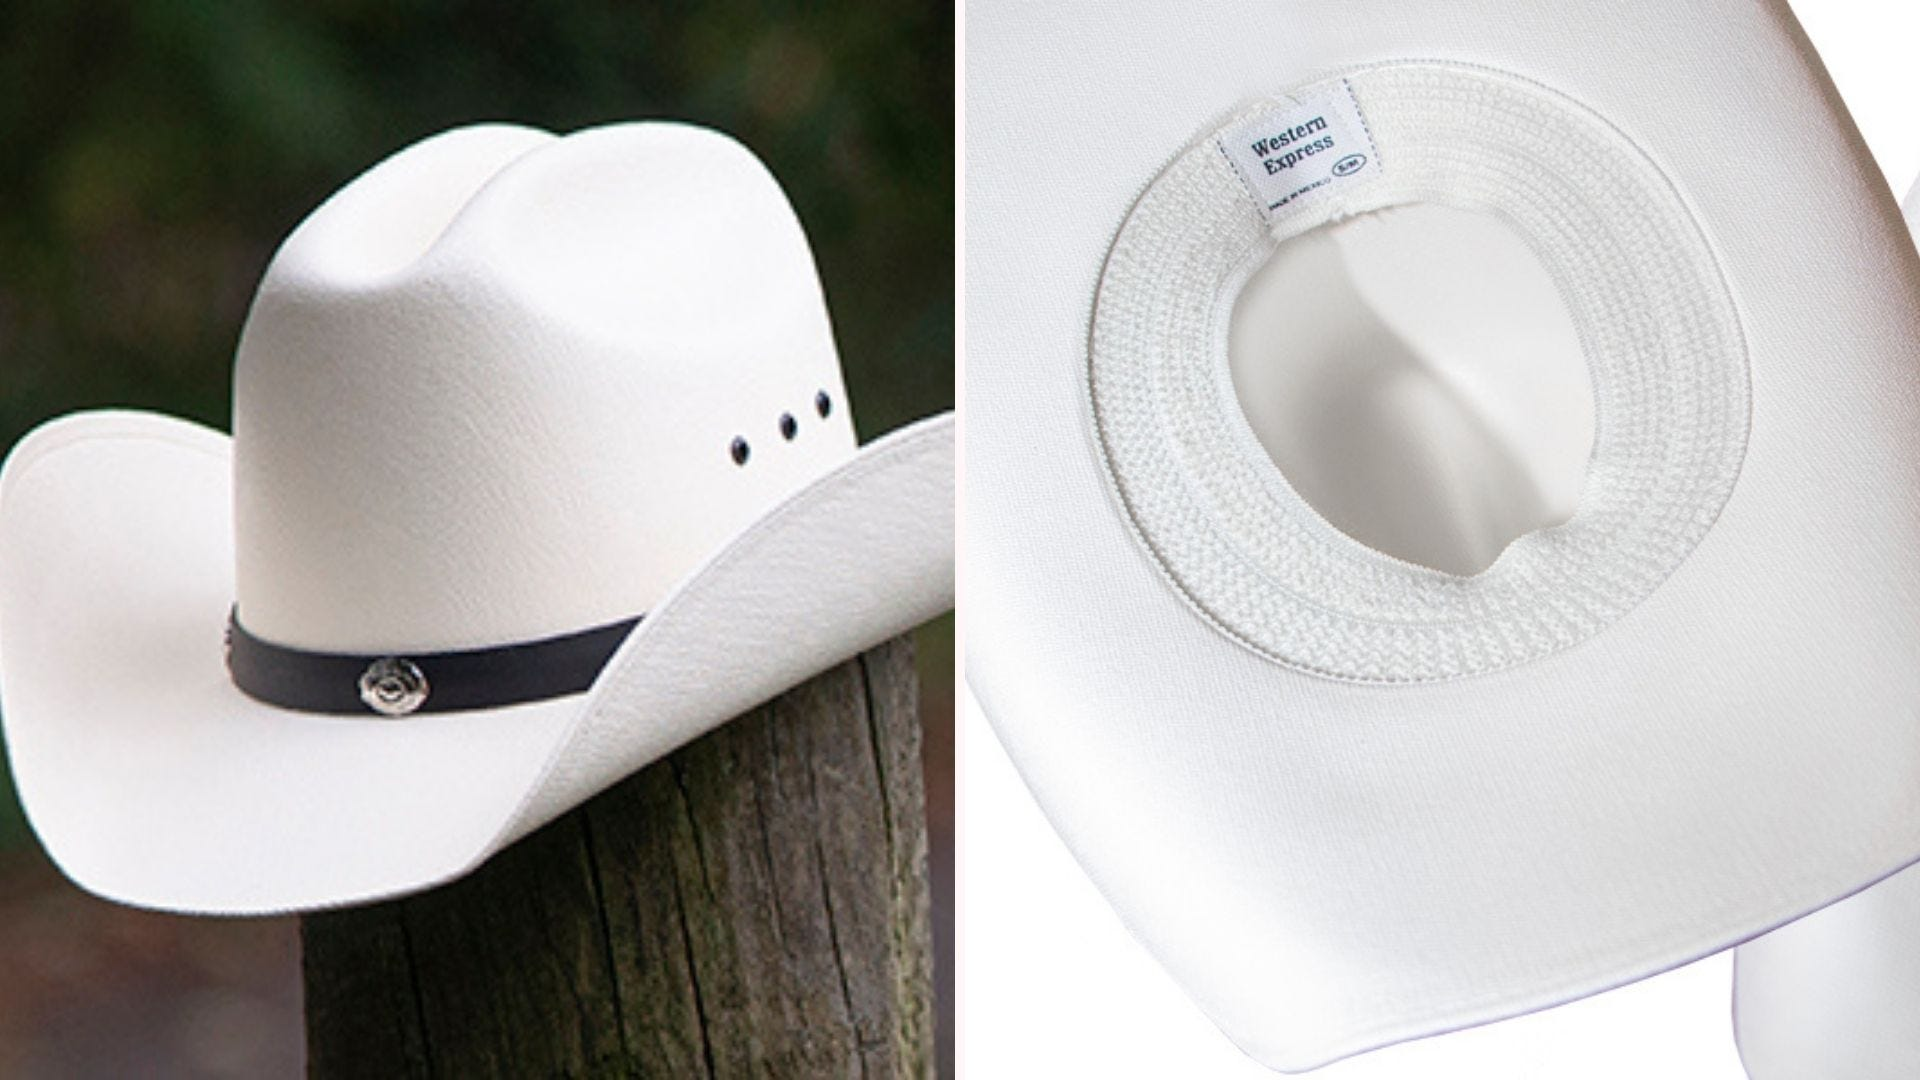 On the left, an off-white cowboy hat with a black crown band that's lined with silver conchos sits on top of a wooden post. On the right is the underside of the hat, which features an elastic closure.